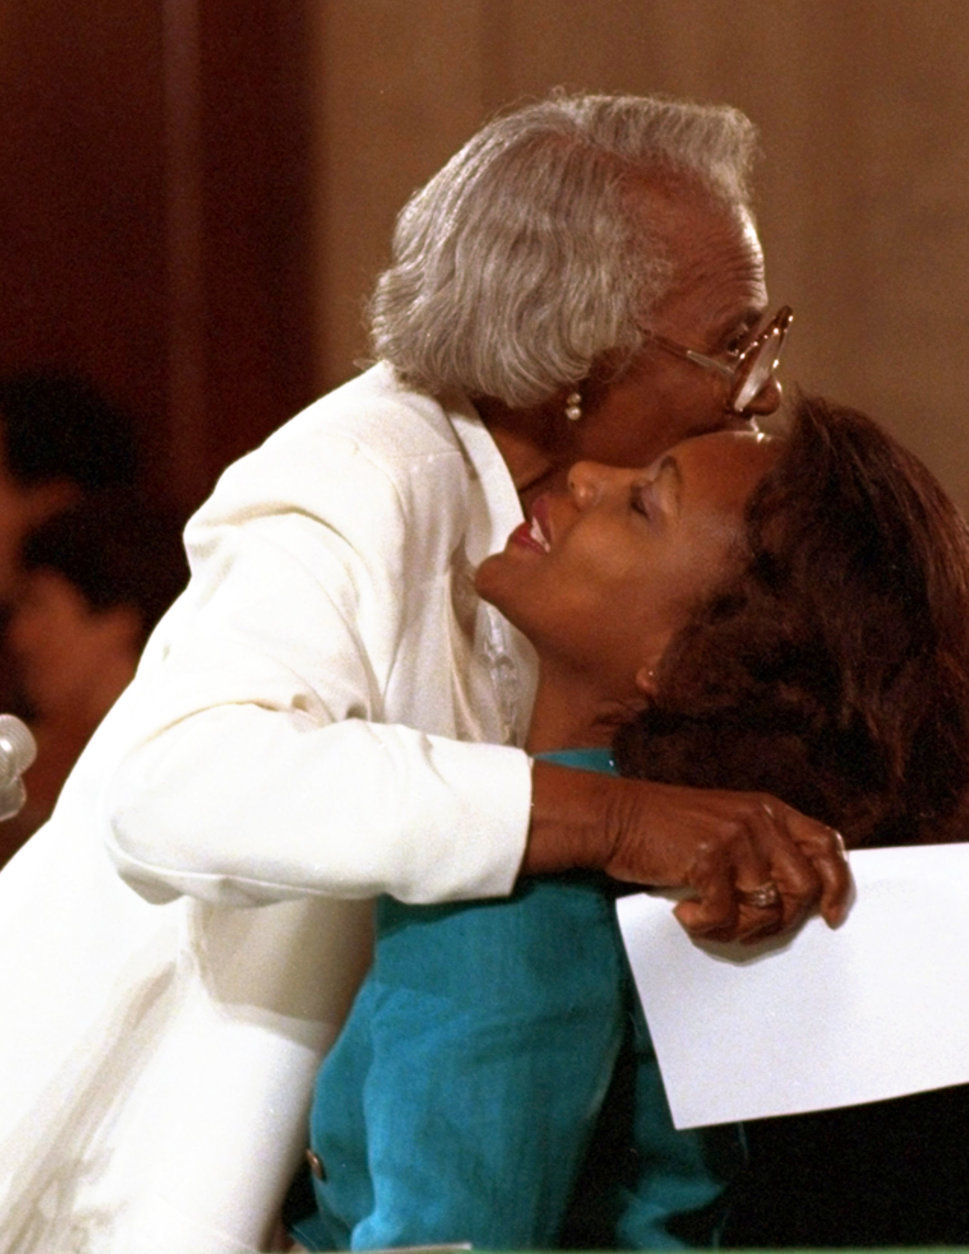 """FILE - This Oct. 11, 1991 file photo shows University of Oklahoma law professor Anita Hill receiving a hug from her mother, Erma, after making opening comments to the Senate Judiciary Committee on Capitol Hill in Washington.  Hill made national headlines in 1991 when she testified that then-Supreme Court nominee Clarence Thomas had sexually harassed her. Now, more than 20 years later, director Freida Mock explores Hill's landmark testimony and the resulting social and political changes in the documentary """"Anita."""" (AP Photo/Greg Gibson, File)"""